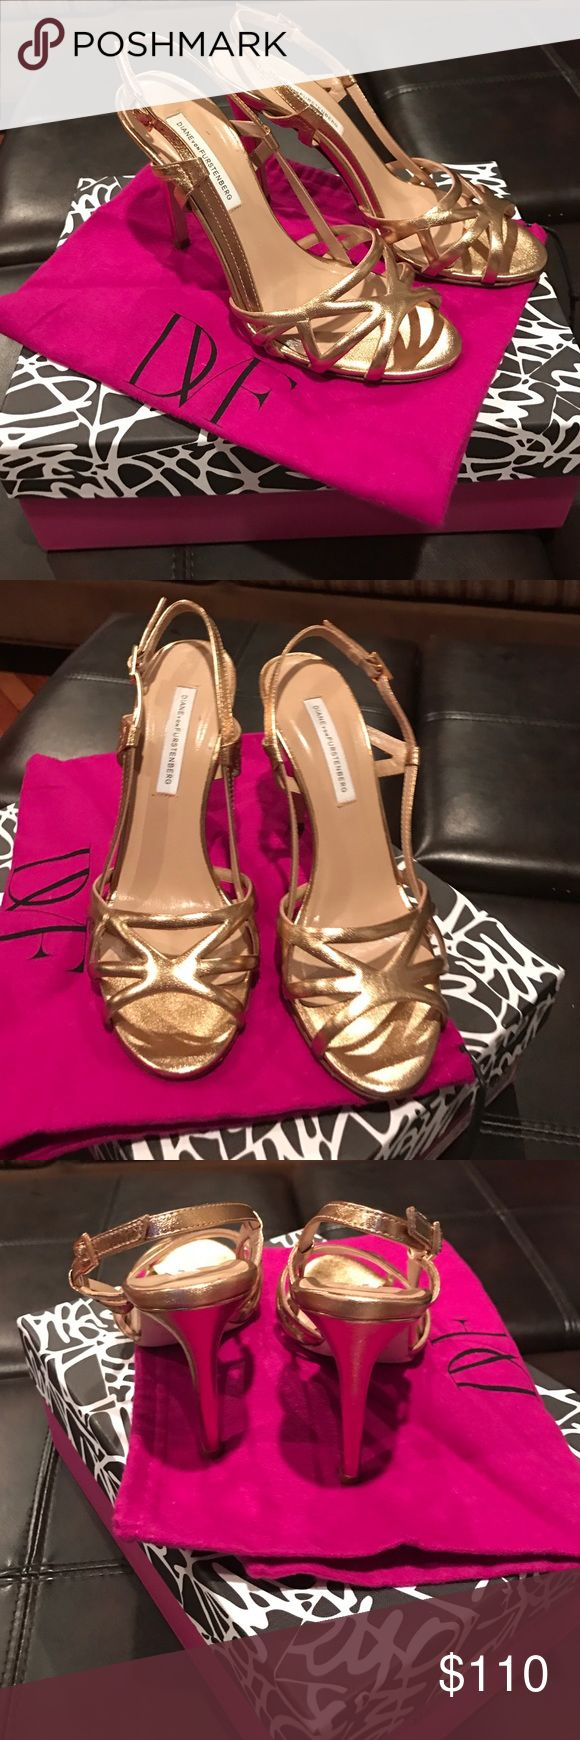 Diane von Furstenberg gold evening shoe. Gold strappy evening shoe.  Dust bag included. Worn once. Mint condition. Diane von Furstenberg Shoes Heels